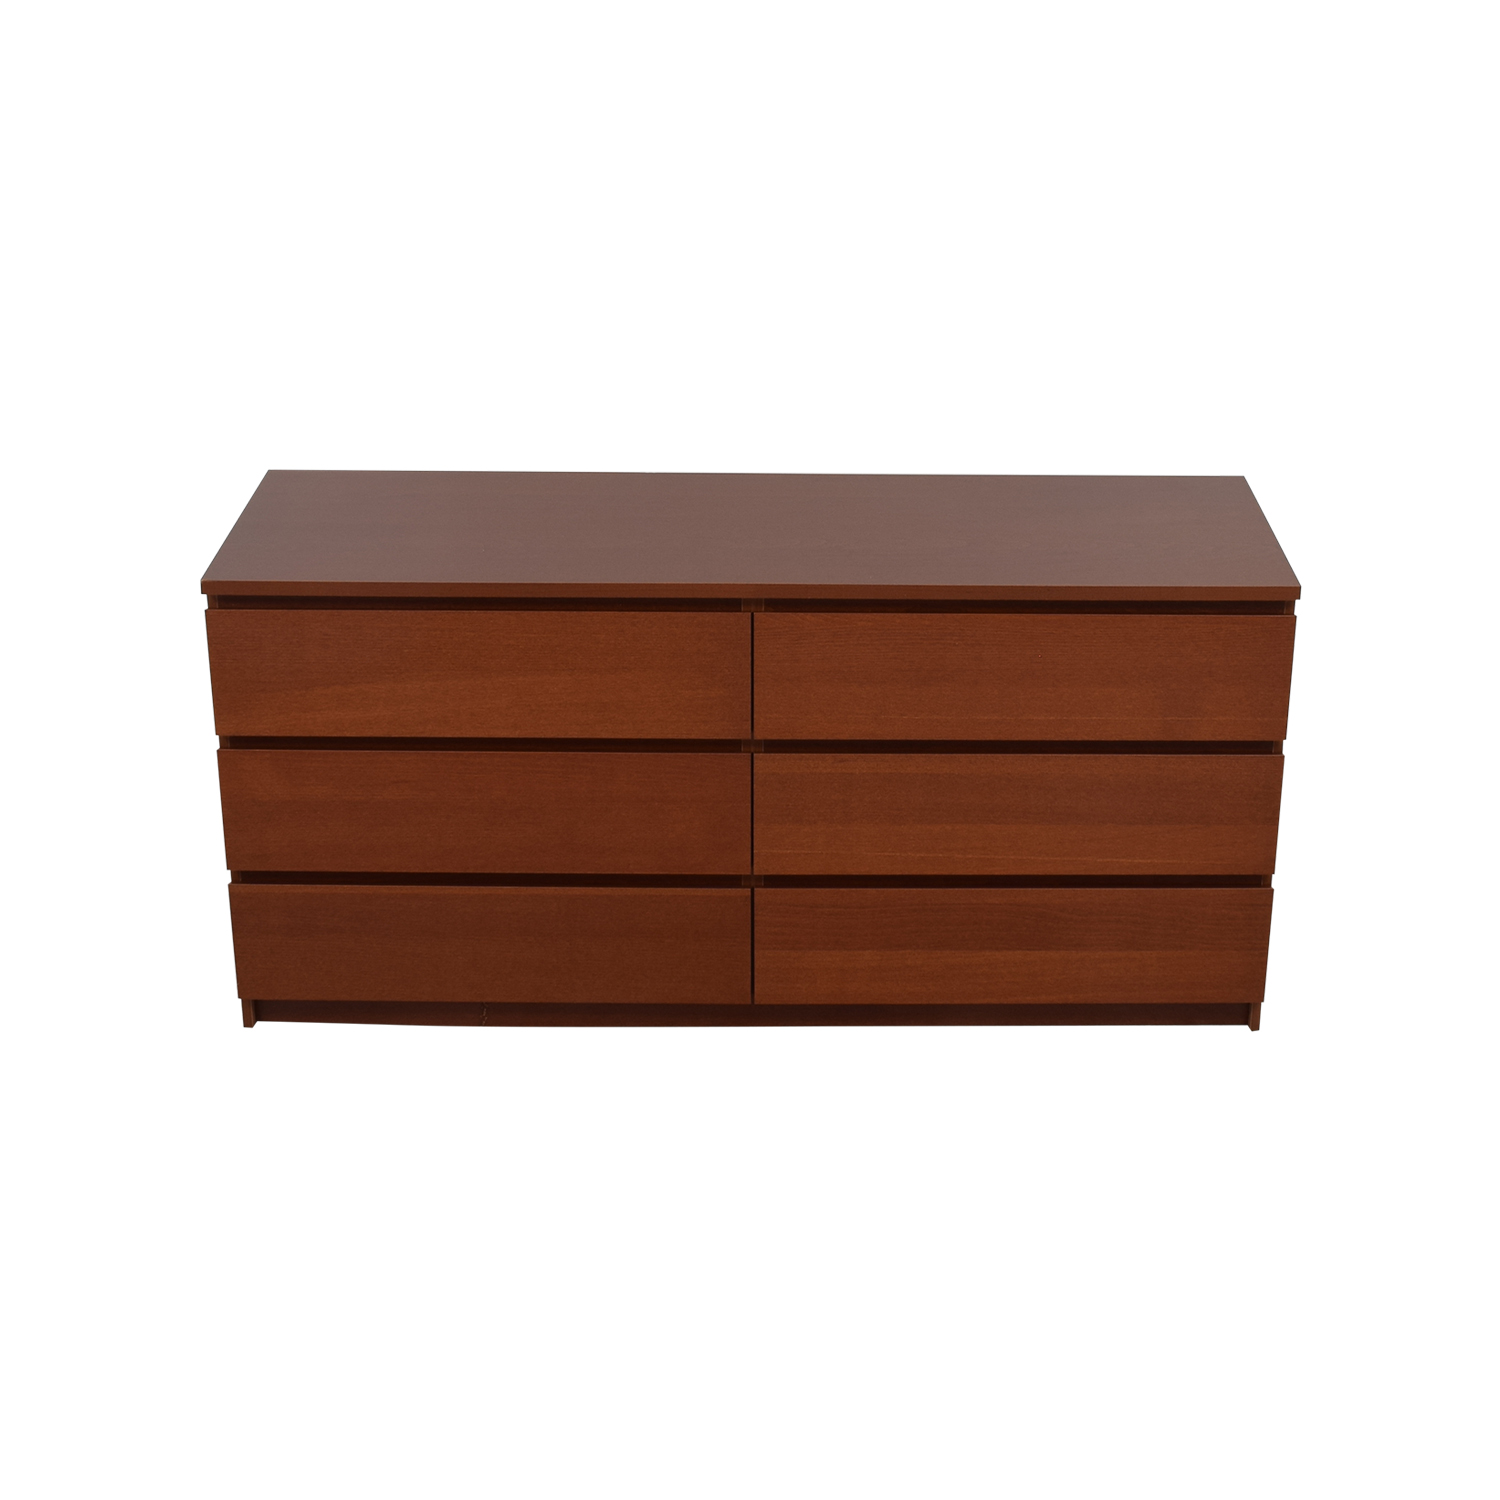 IKEA Malm Six-Drawer Dresser IKEA